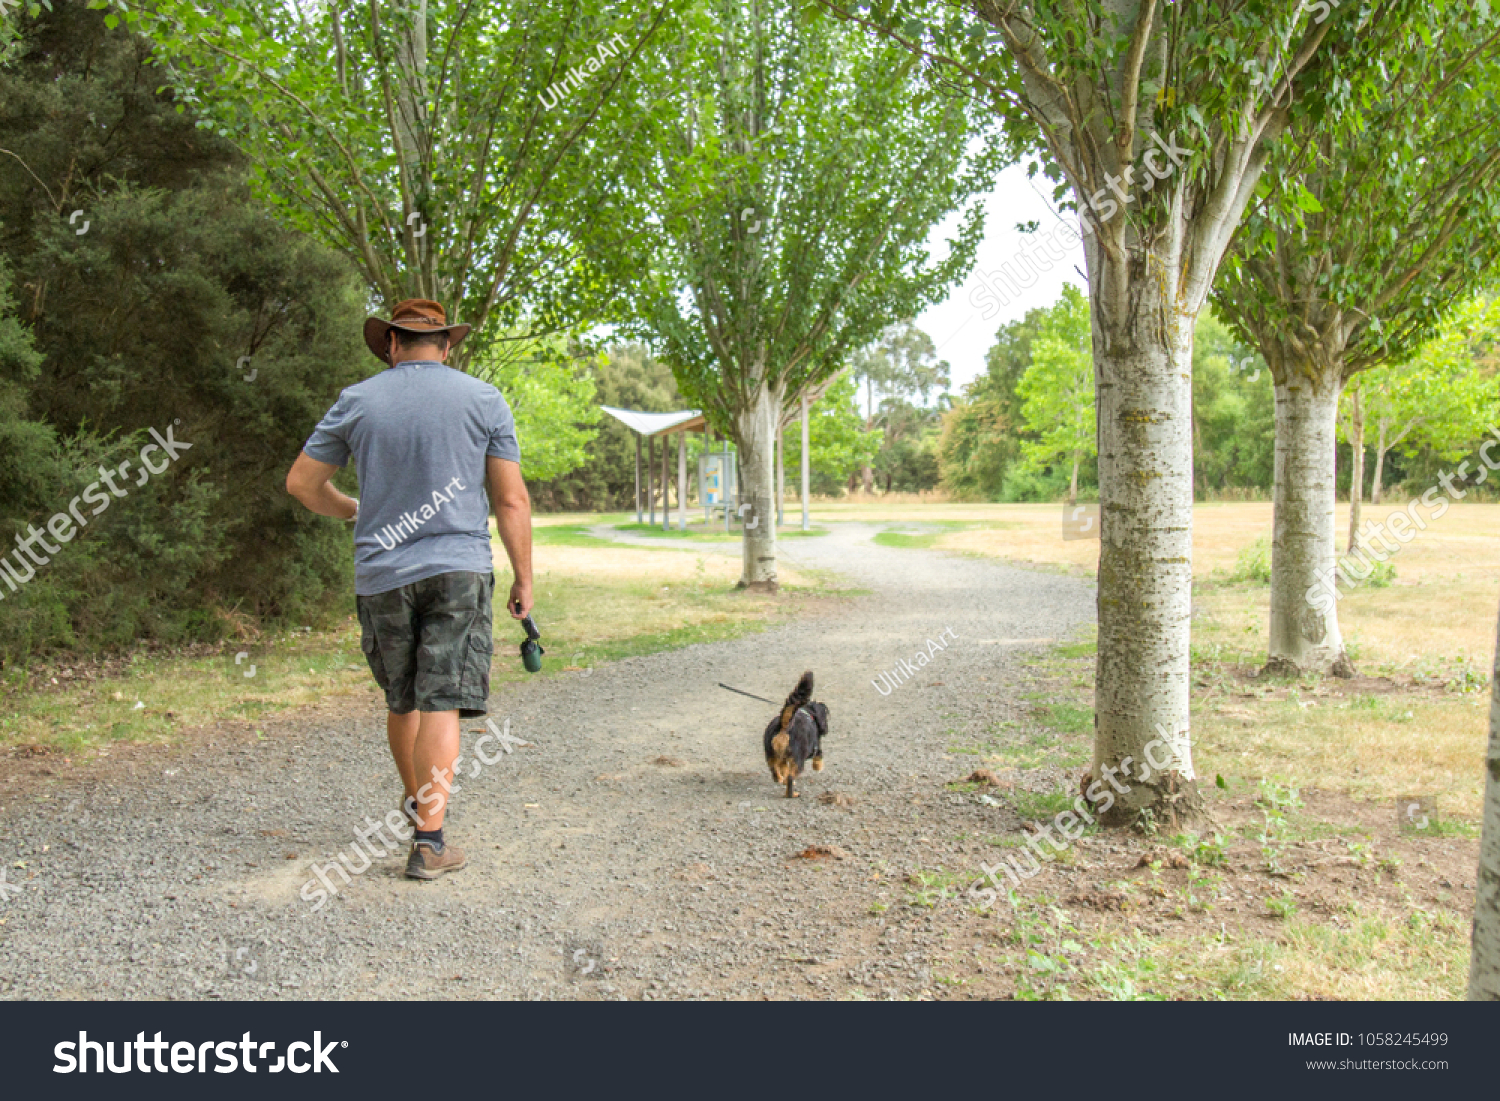 Man Walking His Small Dog Local Parks Outdoor Stock Image 1058245499